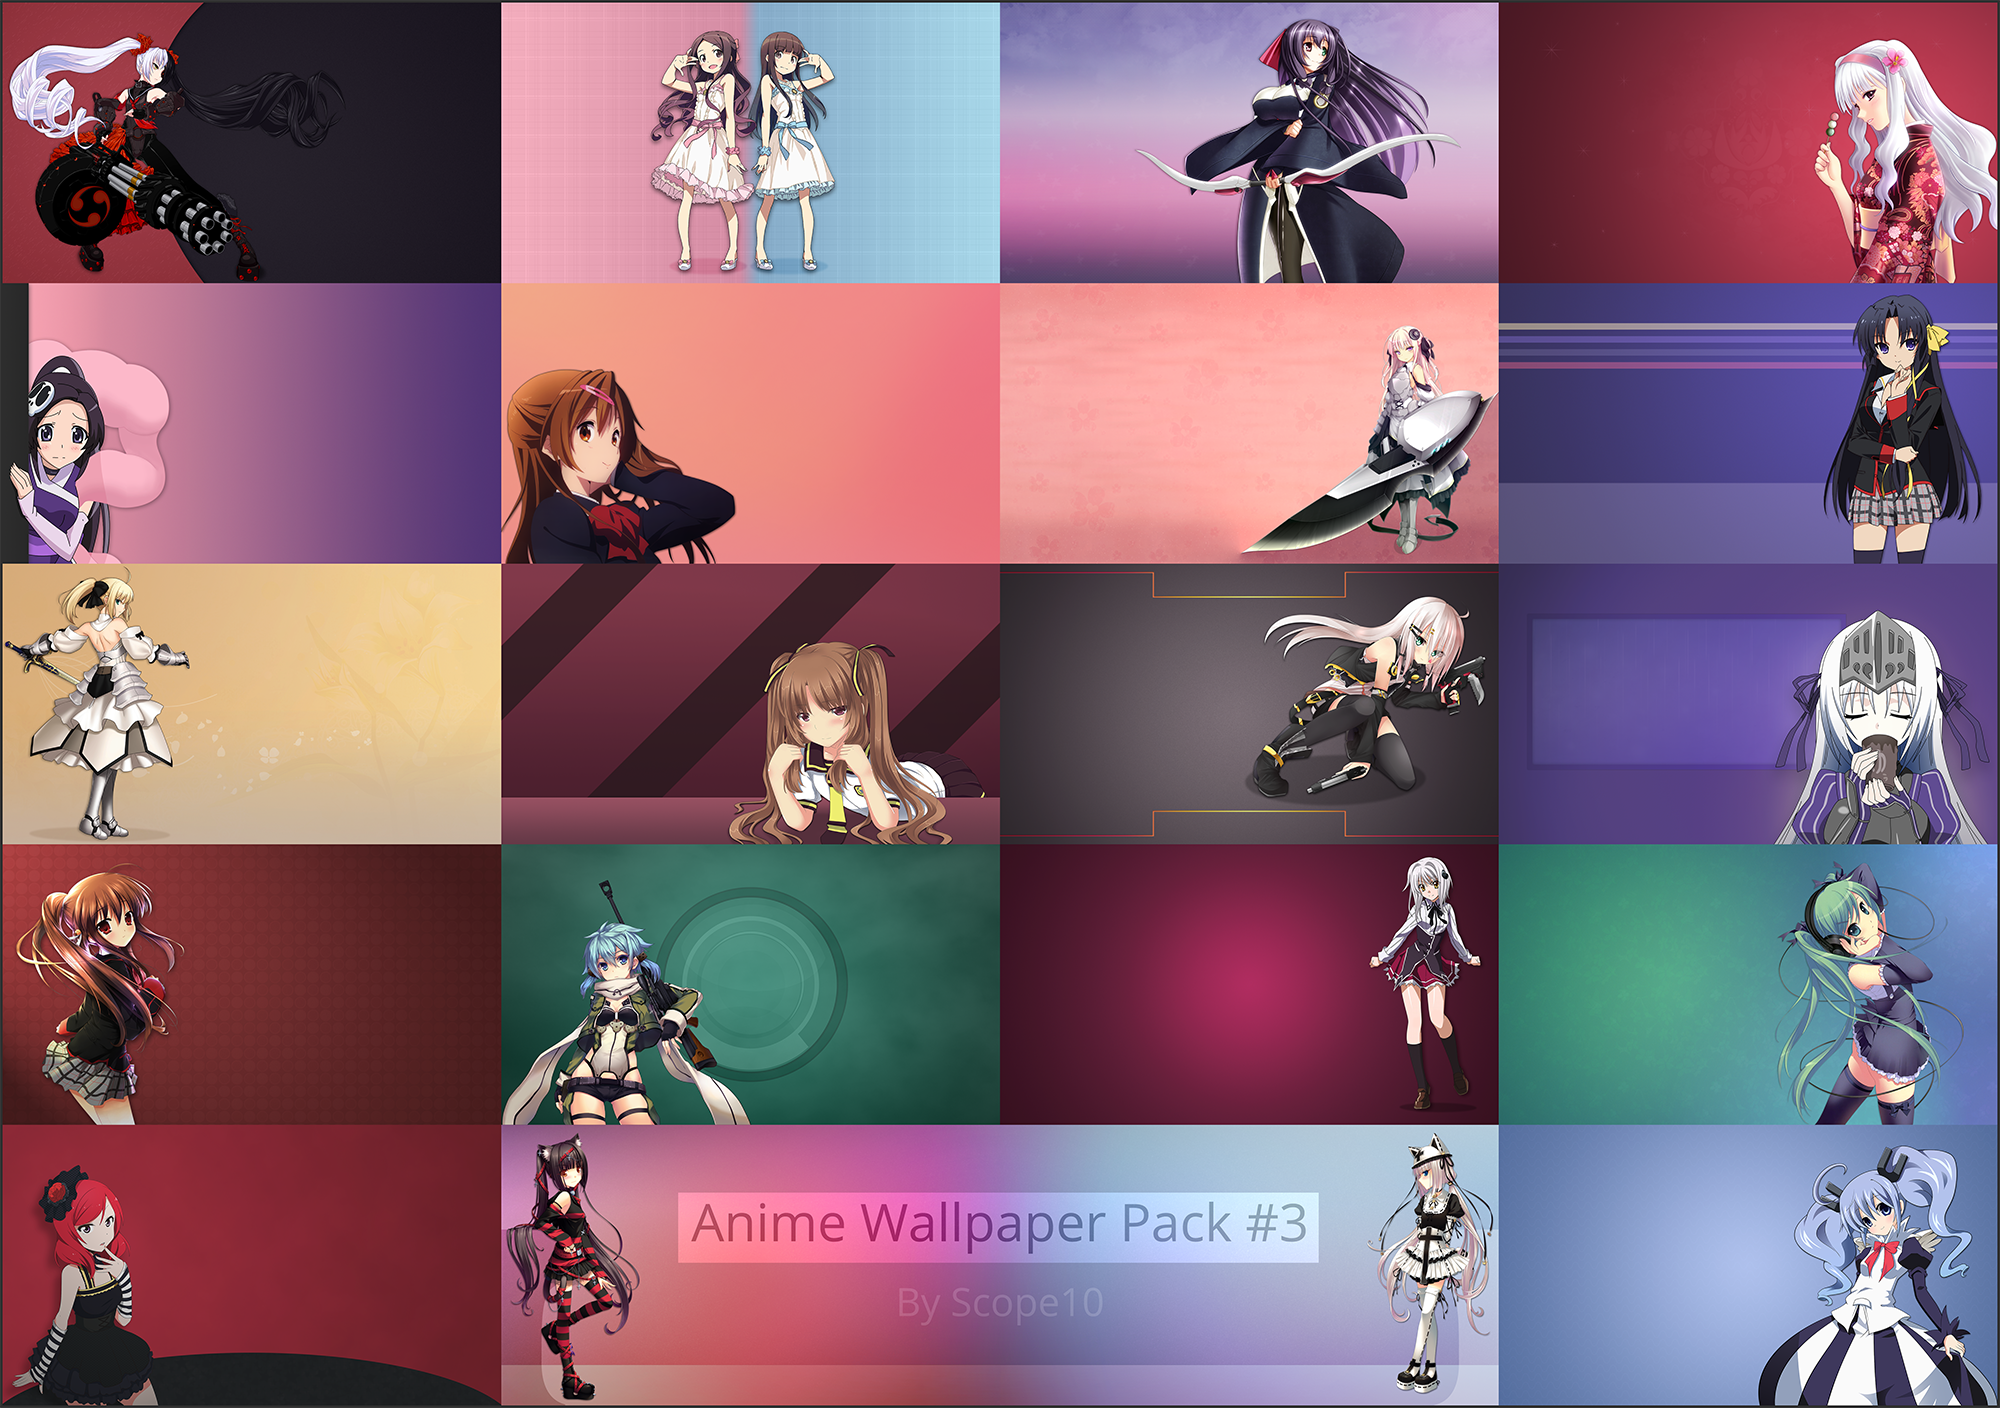 Anime wallpaper pack 3 by scope10